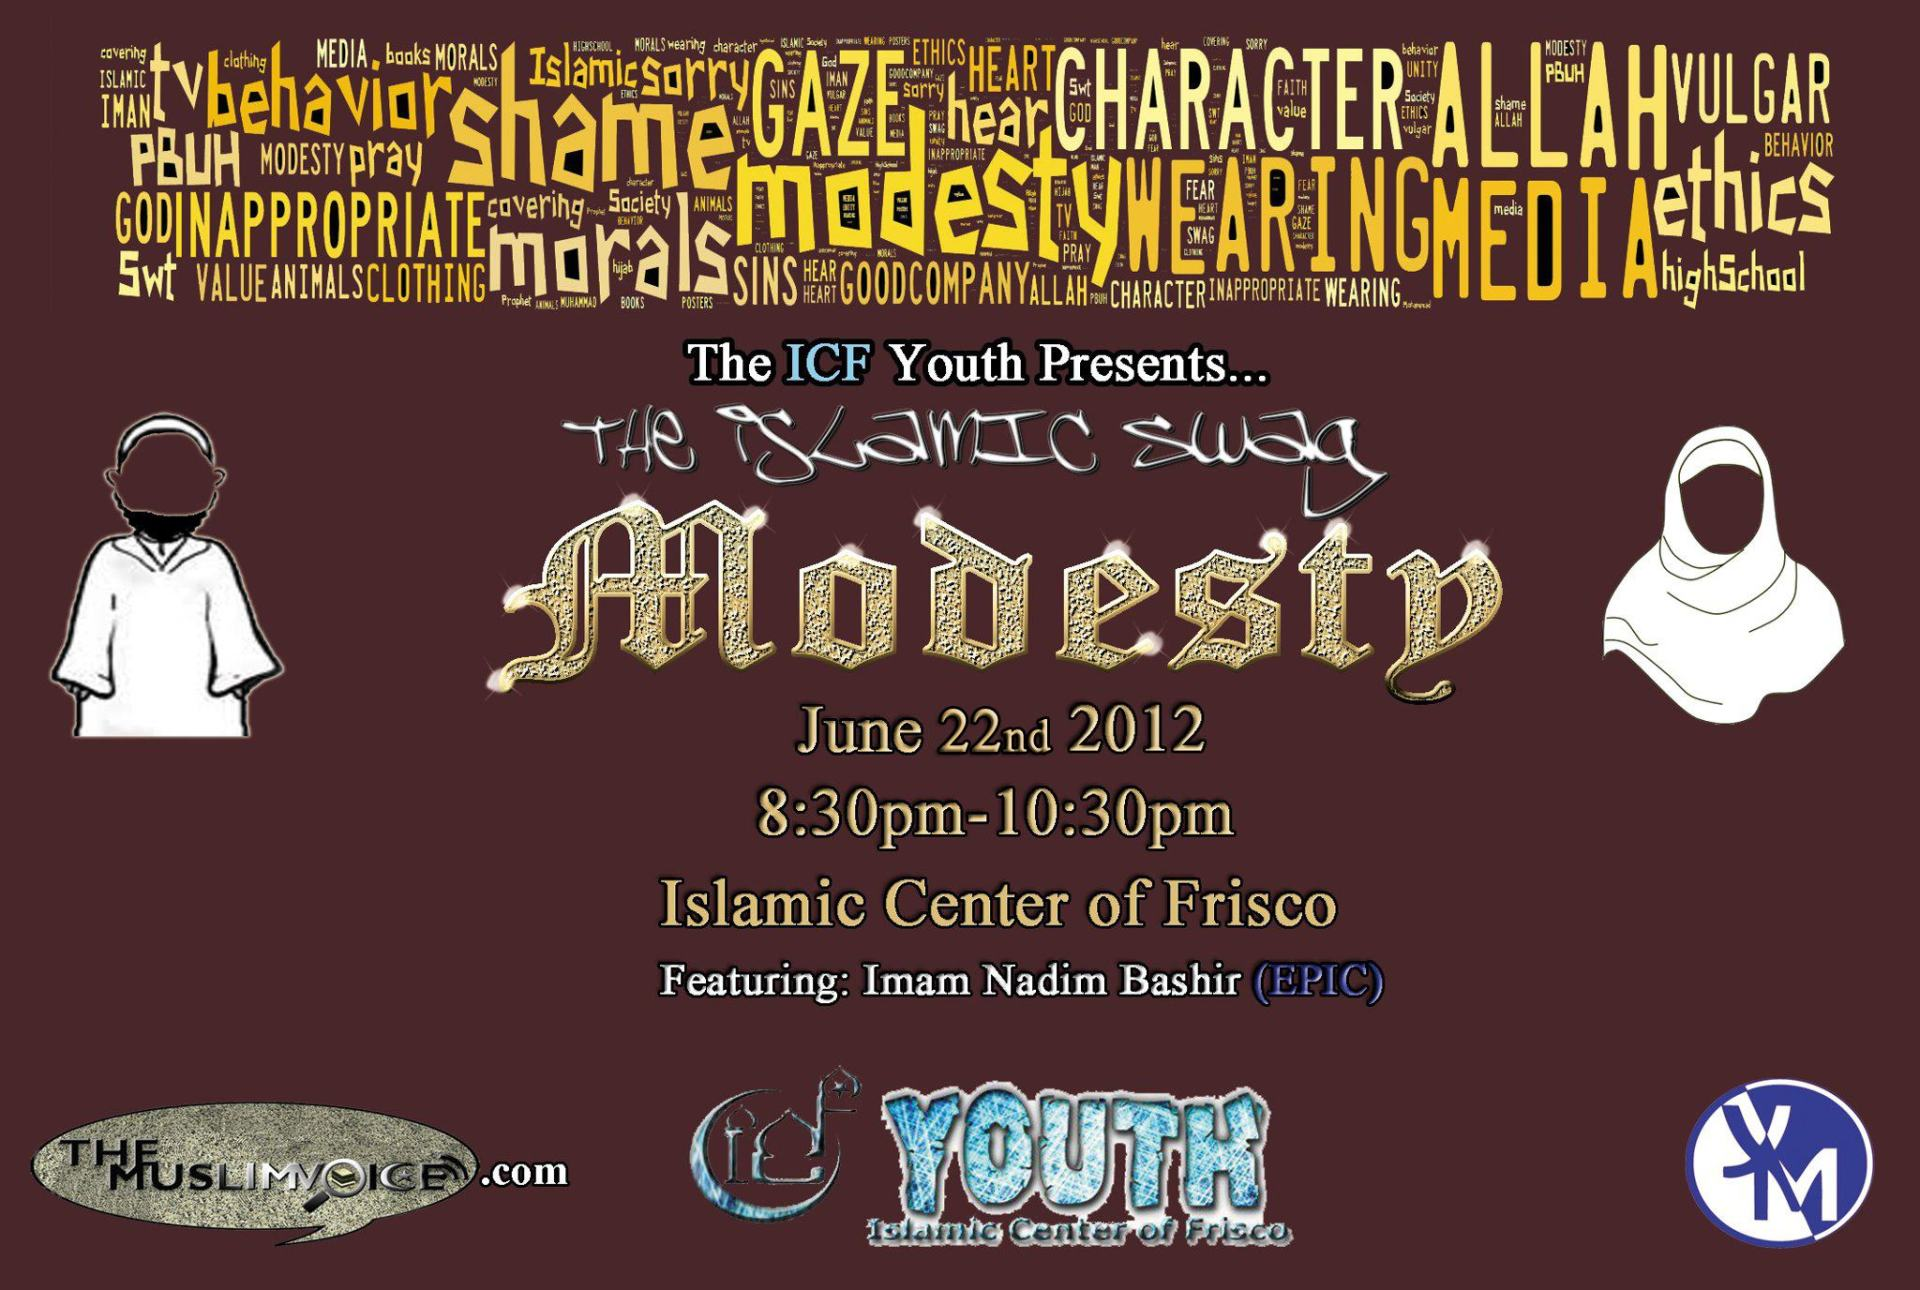 Modesty-The Islamic Swag